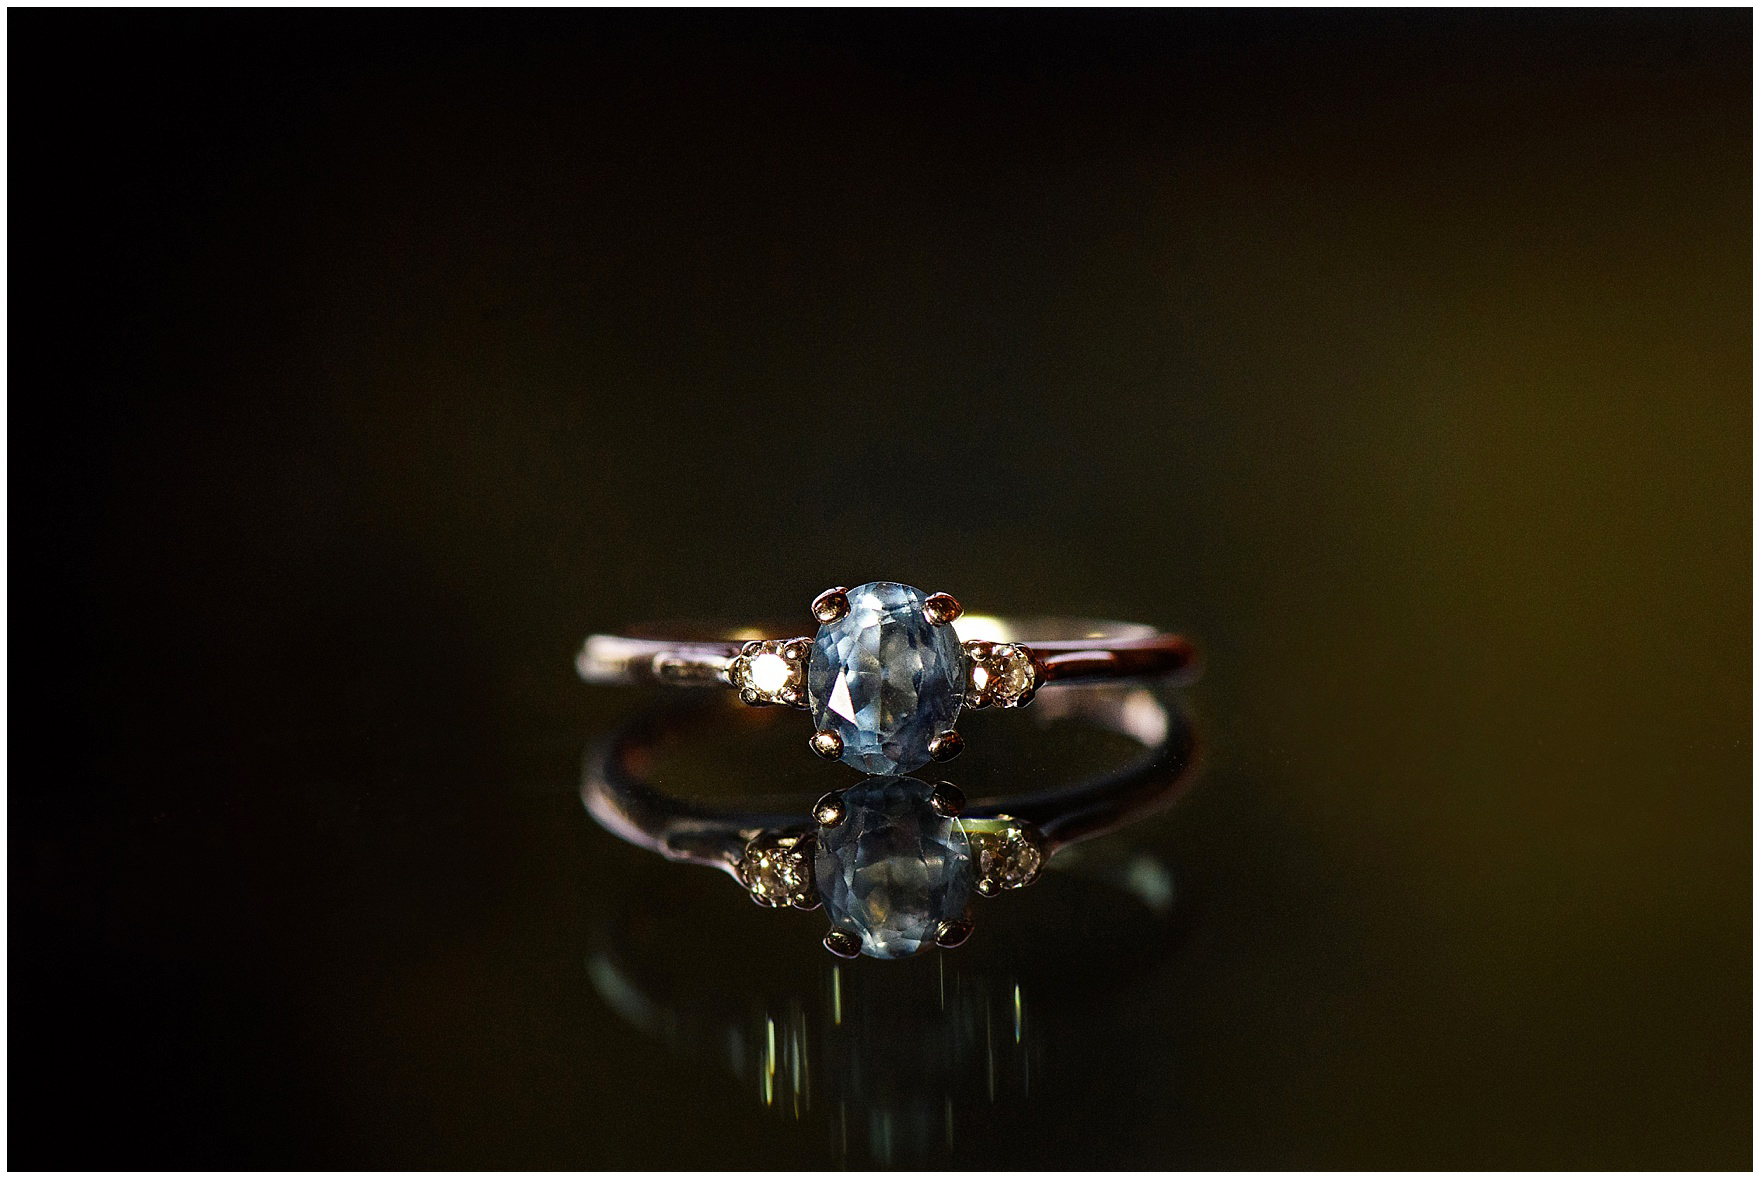 Macro shot of a vintage sapphire ring worn by the bride at a Biltmore Country Club Barrington wedding.